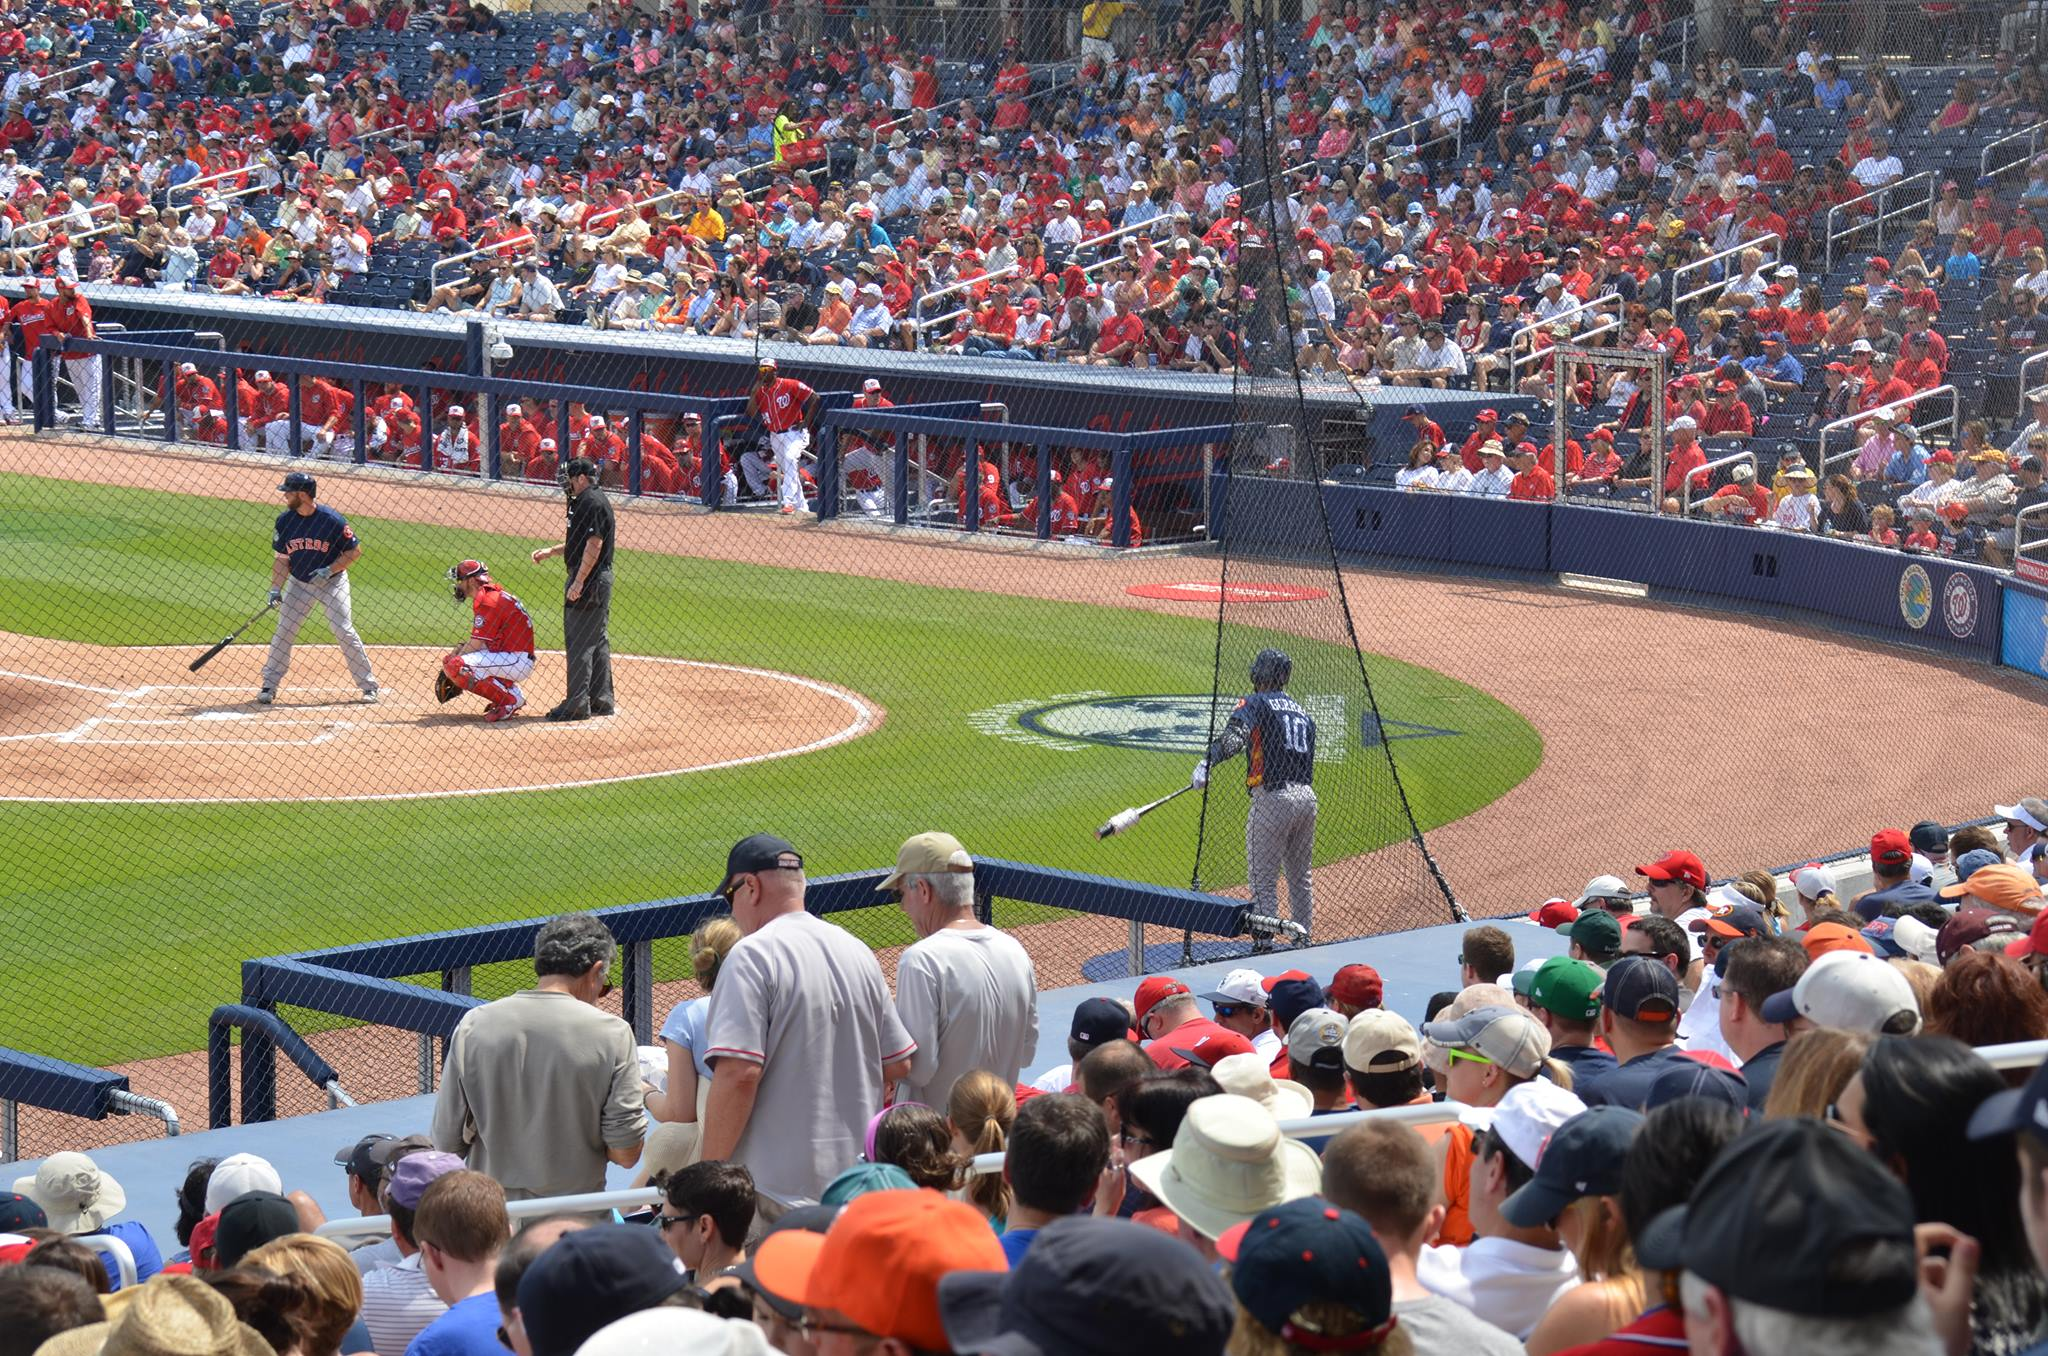 The Ballpark of the Palm Beaches Positively